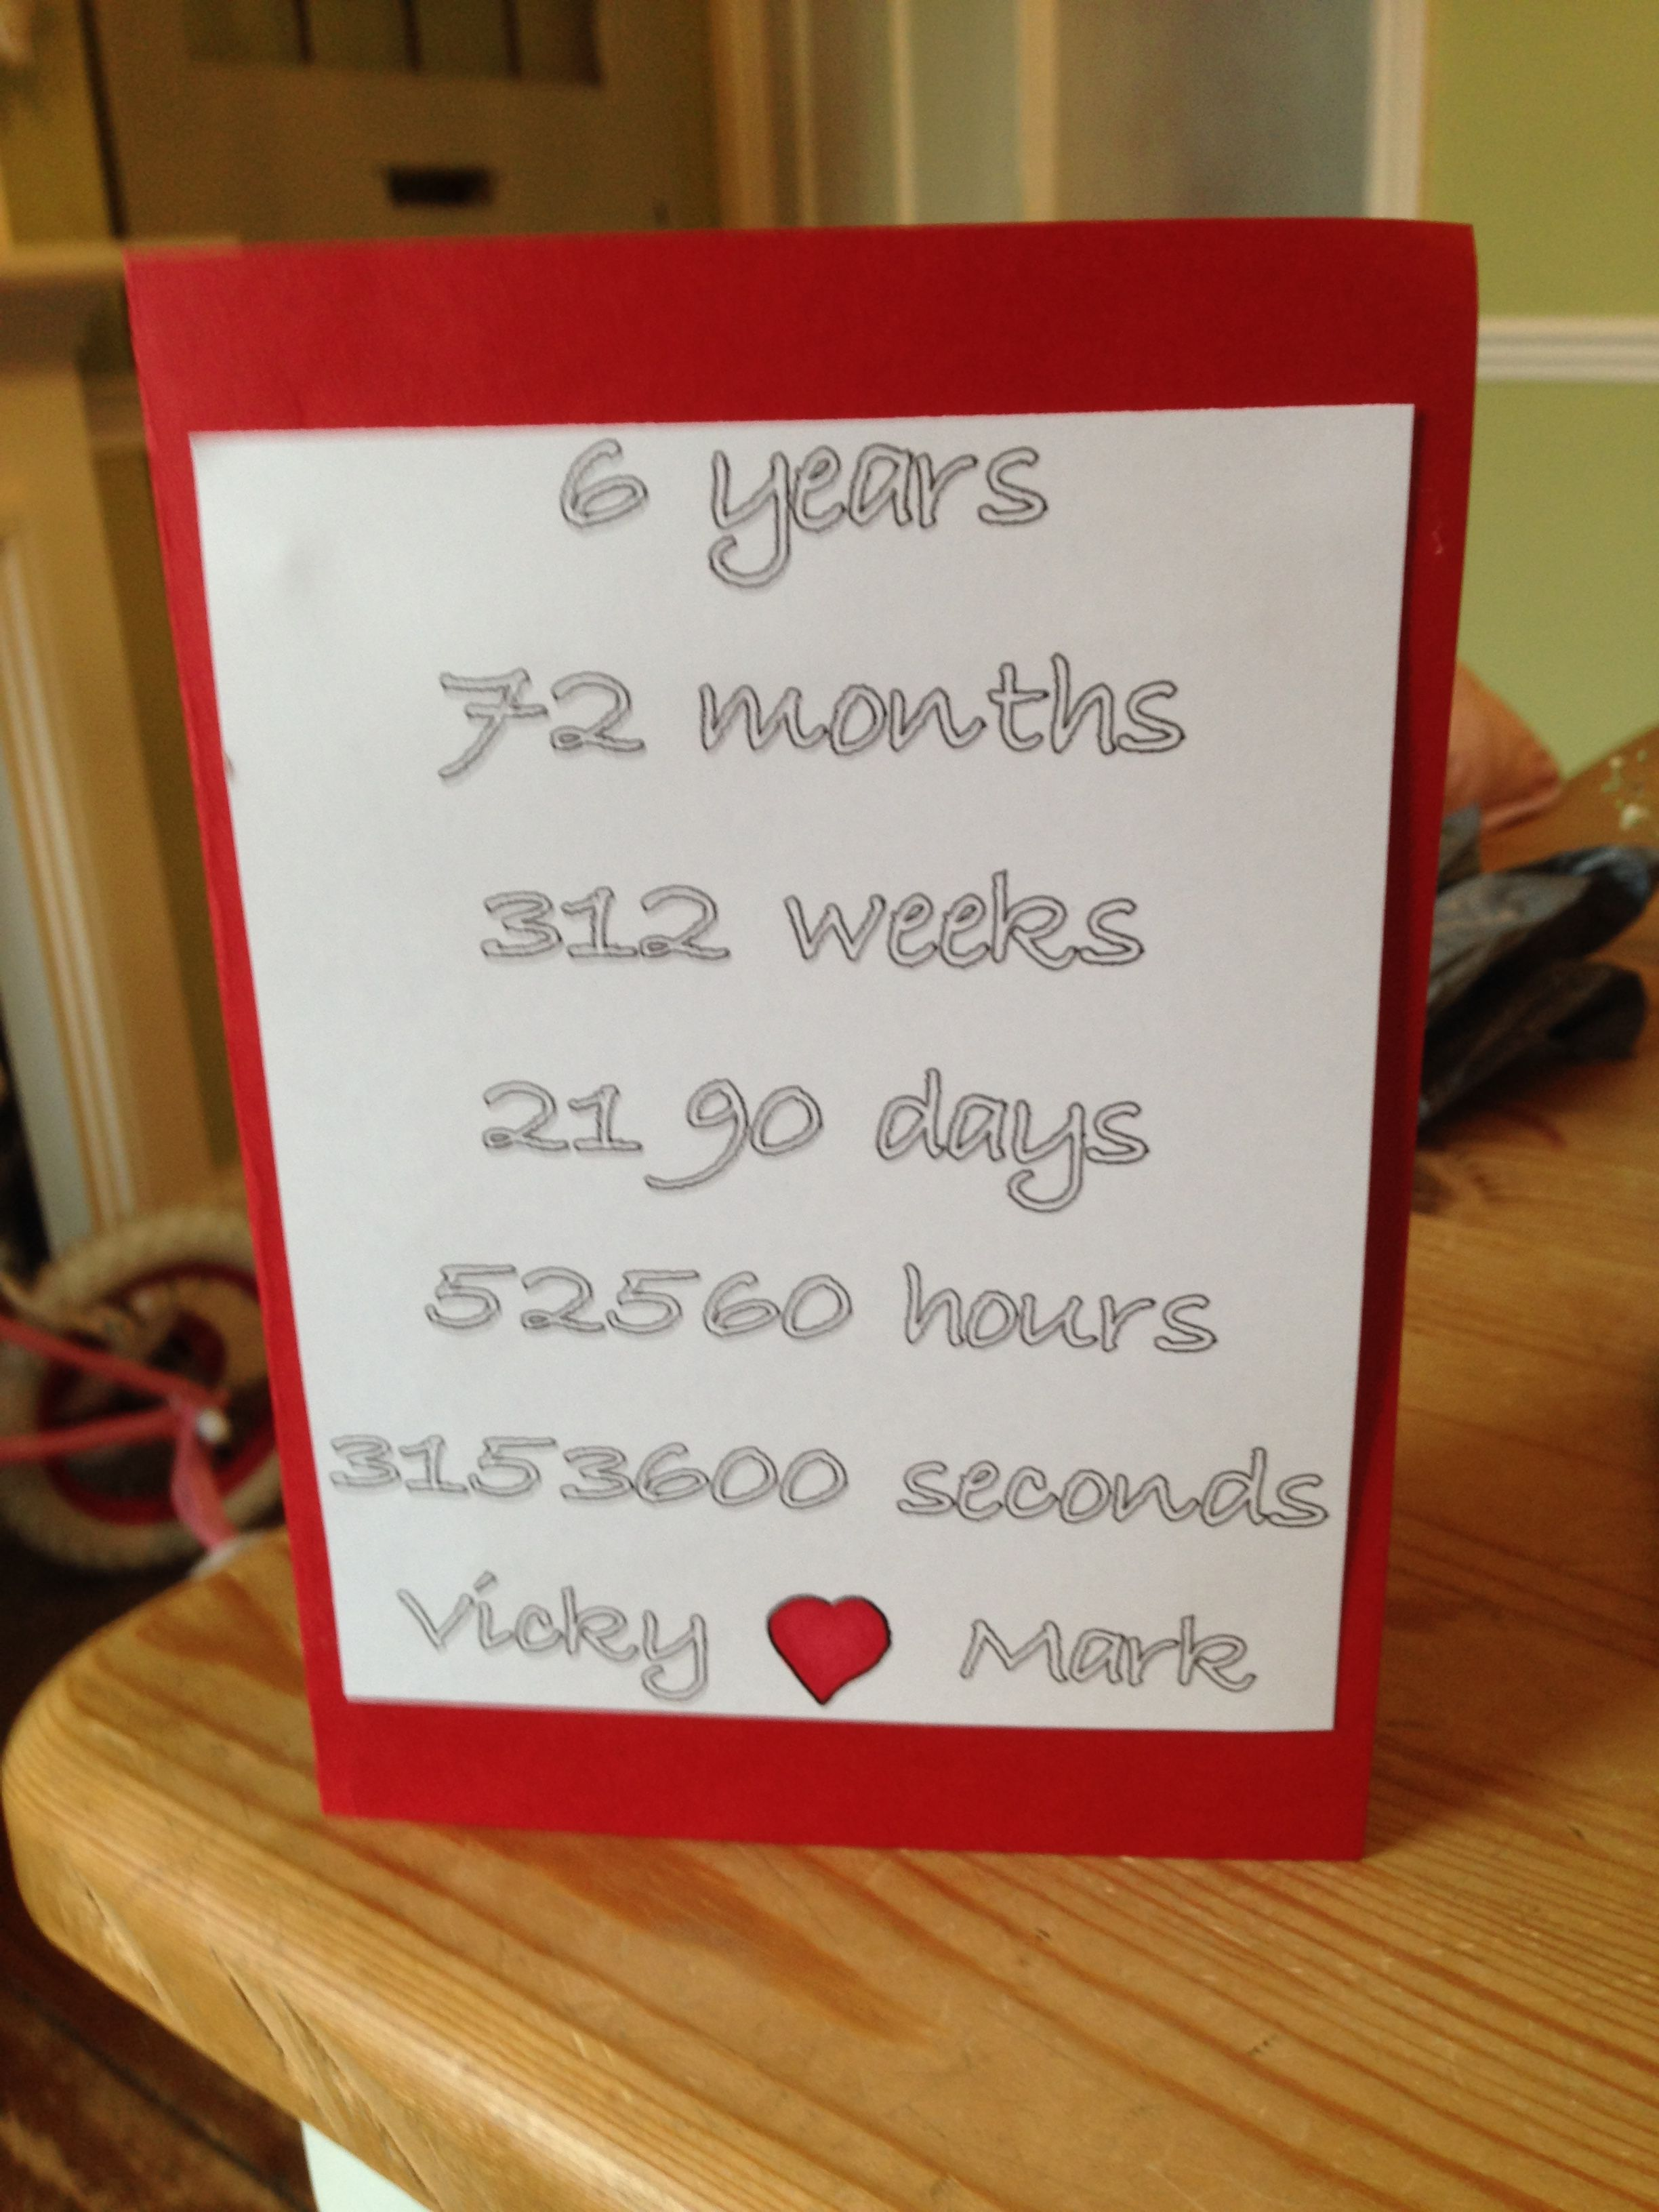 6 Year Anniversary Card 6th Wedding Anniversary Anniversary Ideas For Him 6 Year Anniversary